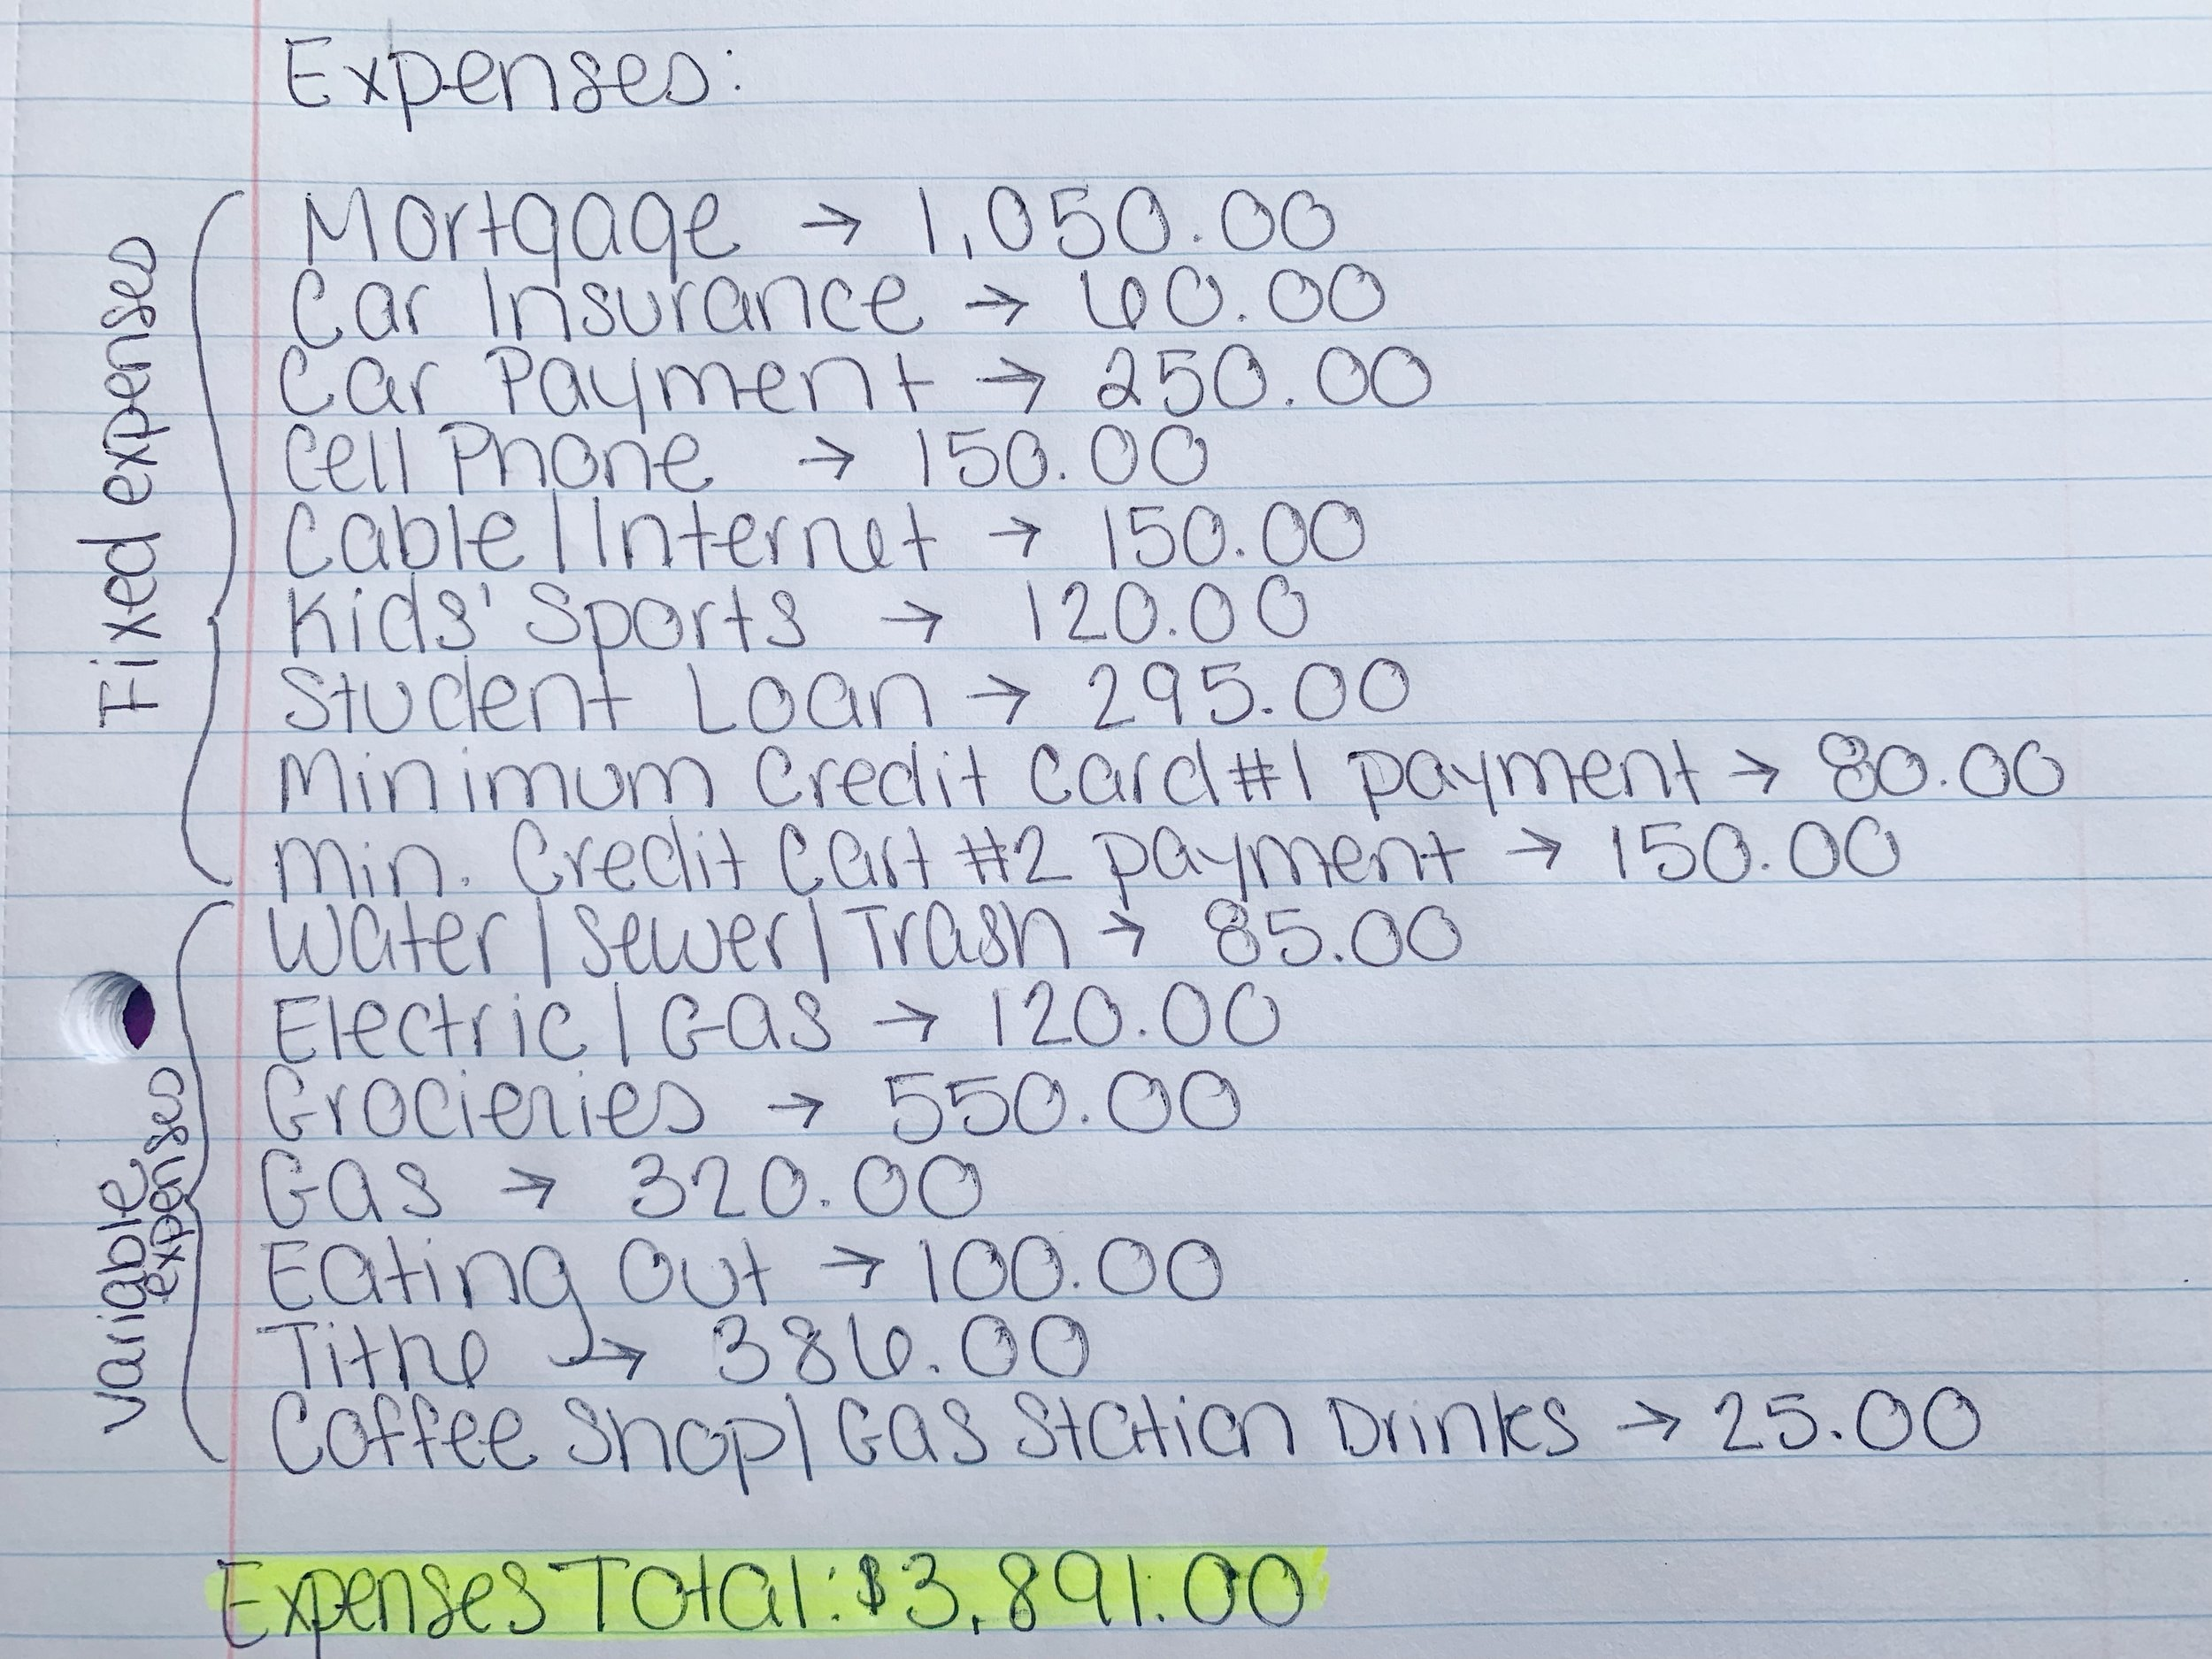 Setting Up A Budget Template: Household Expenses   Example: Figuring Out Your Fixed and Variable Expenses (ignore my misspelled words).